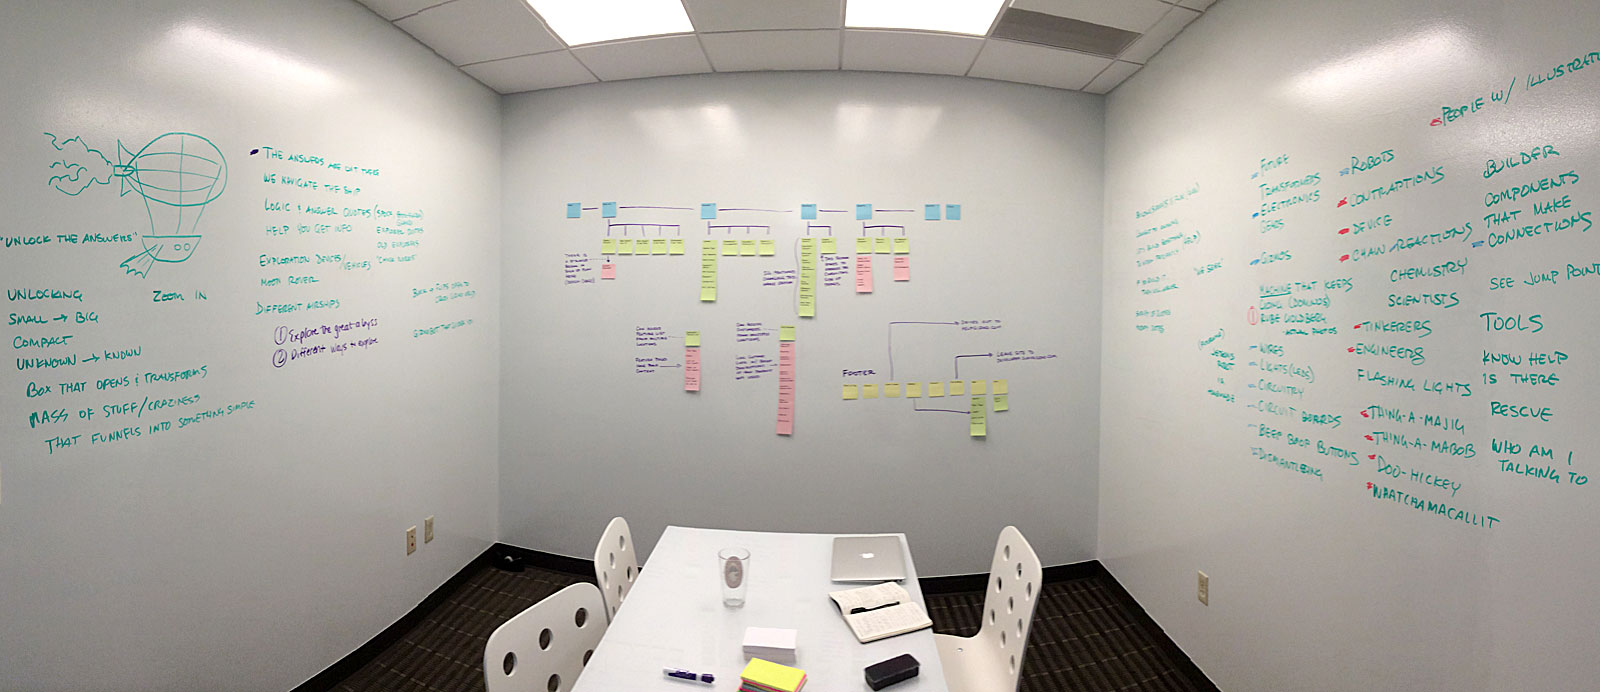 Whiteboard walls after the brainstorming session